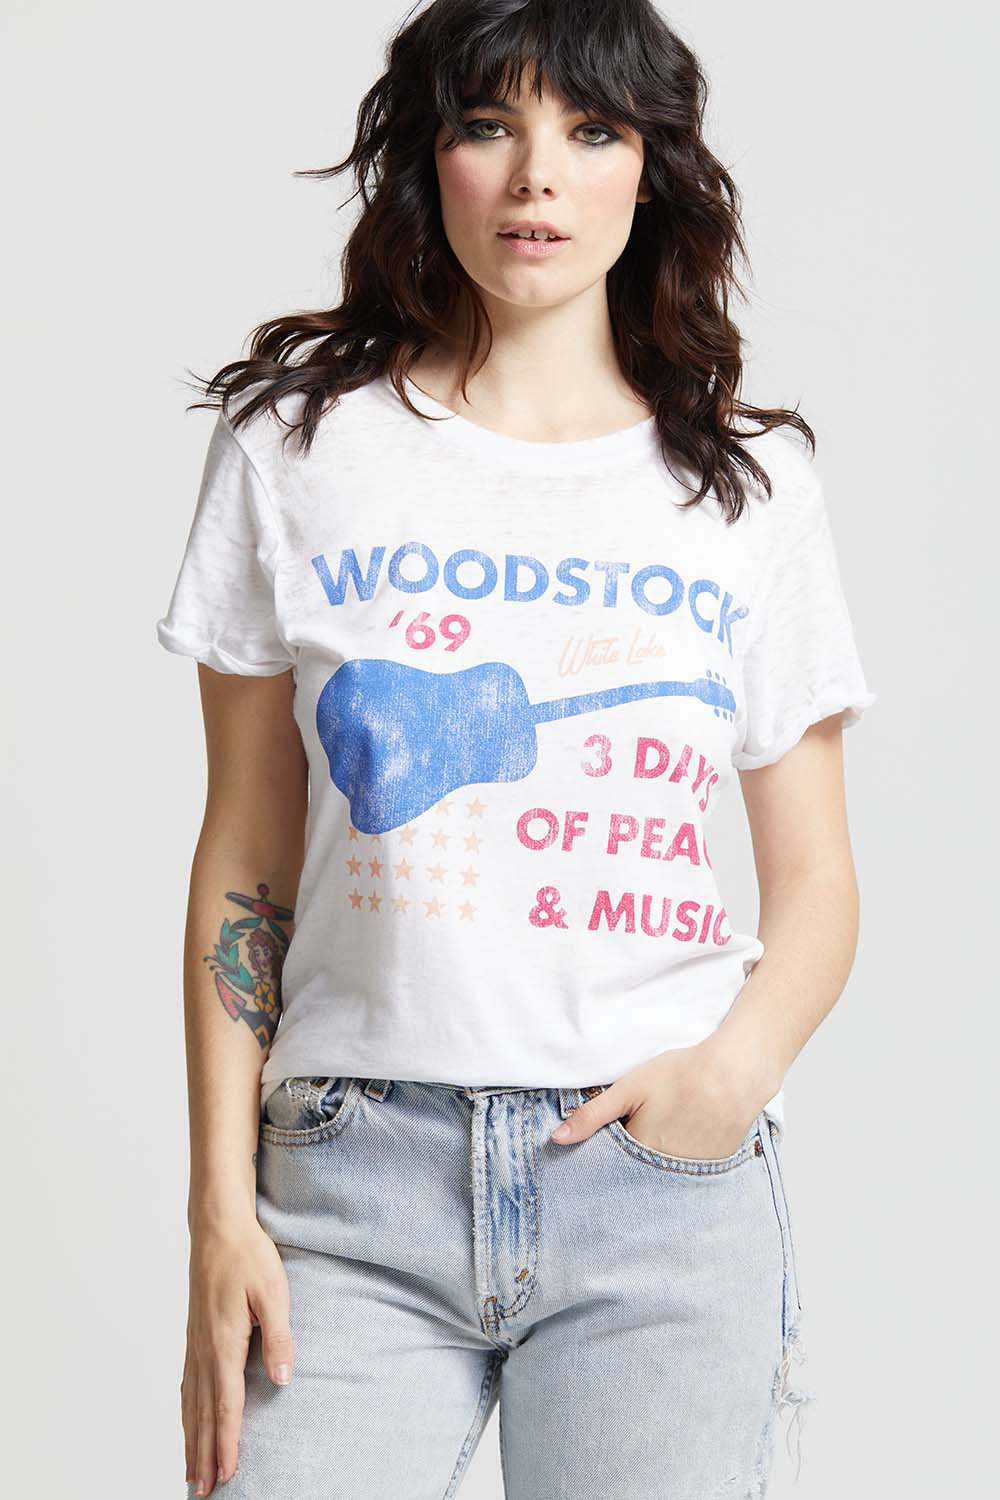 Woodstock 1969 Guitar Tee